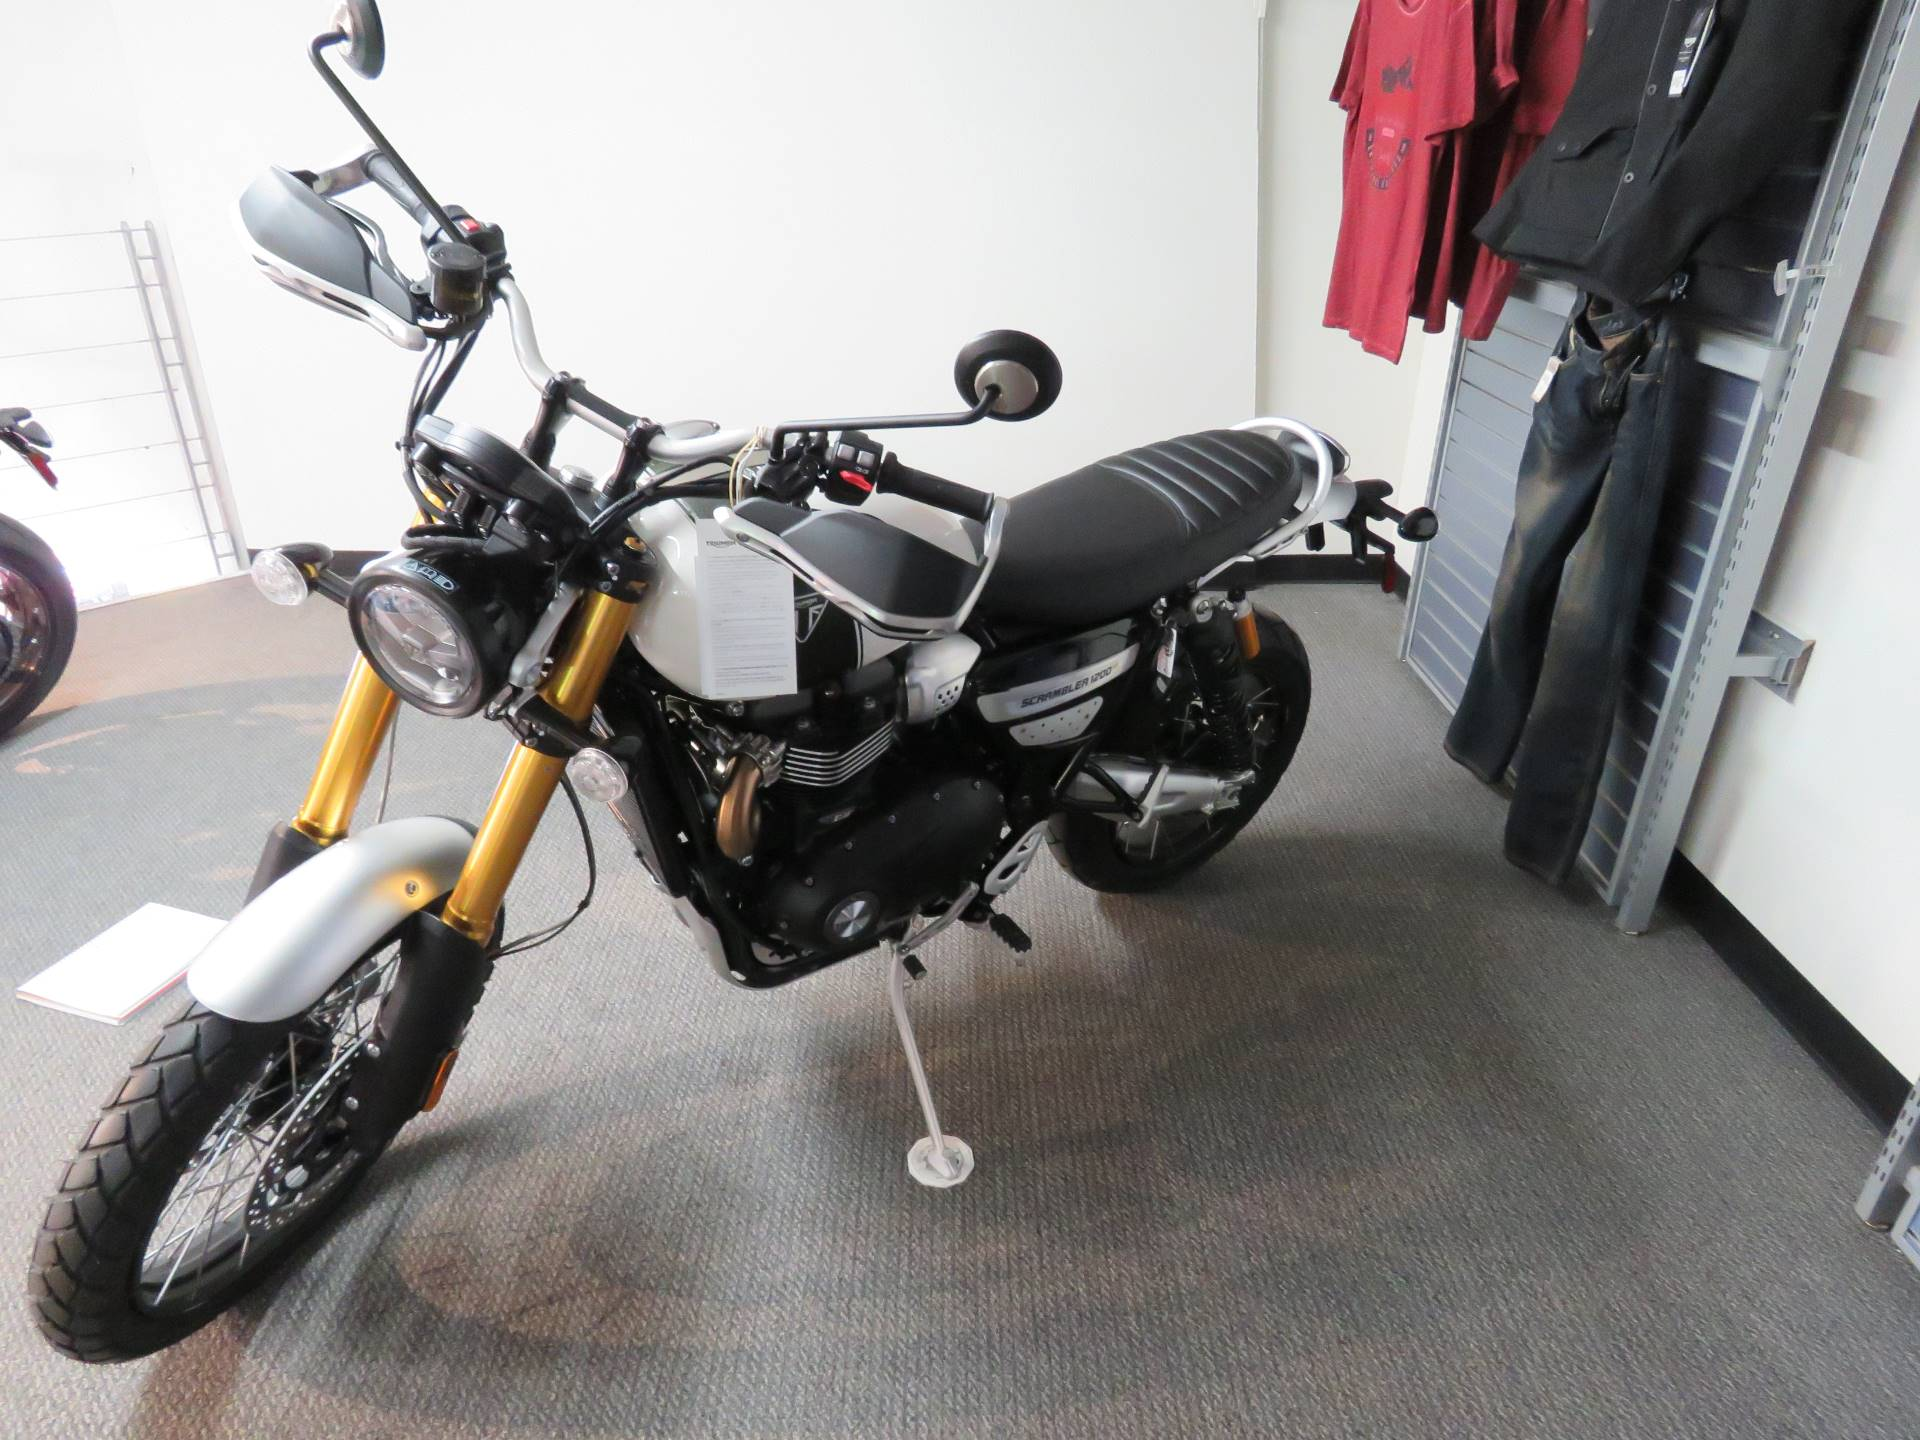 2020 Triumph Scrambler 1200 XE in Iowa City, Iowa - Photo 3